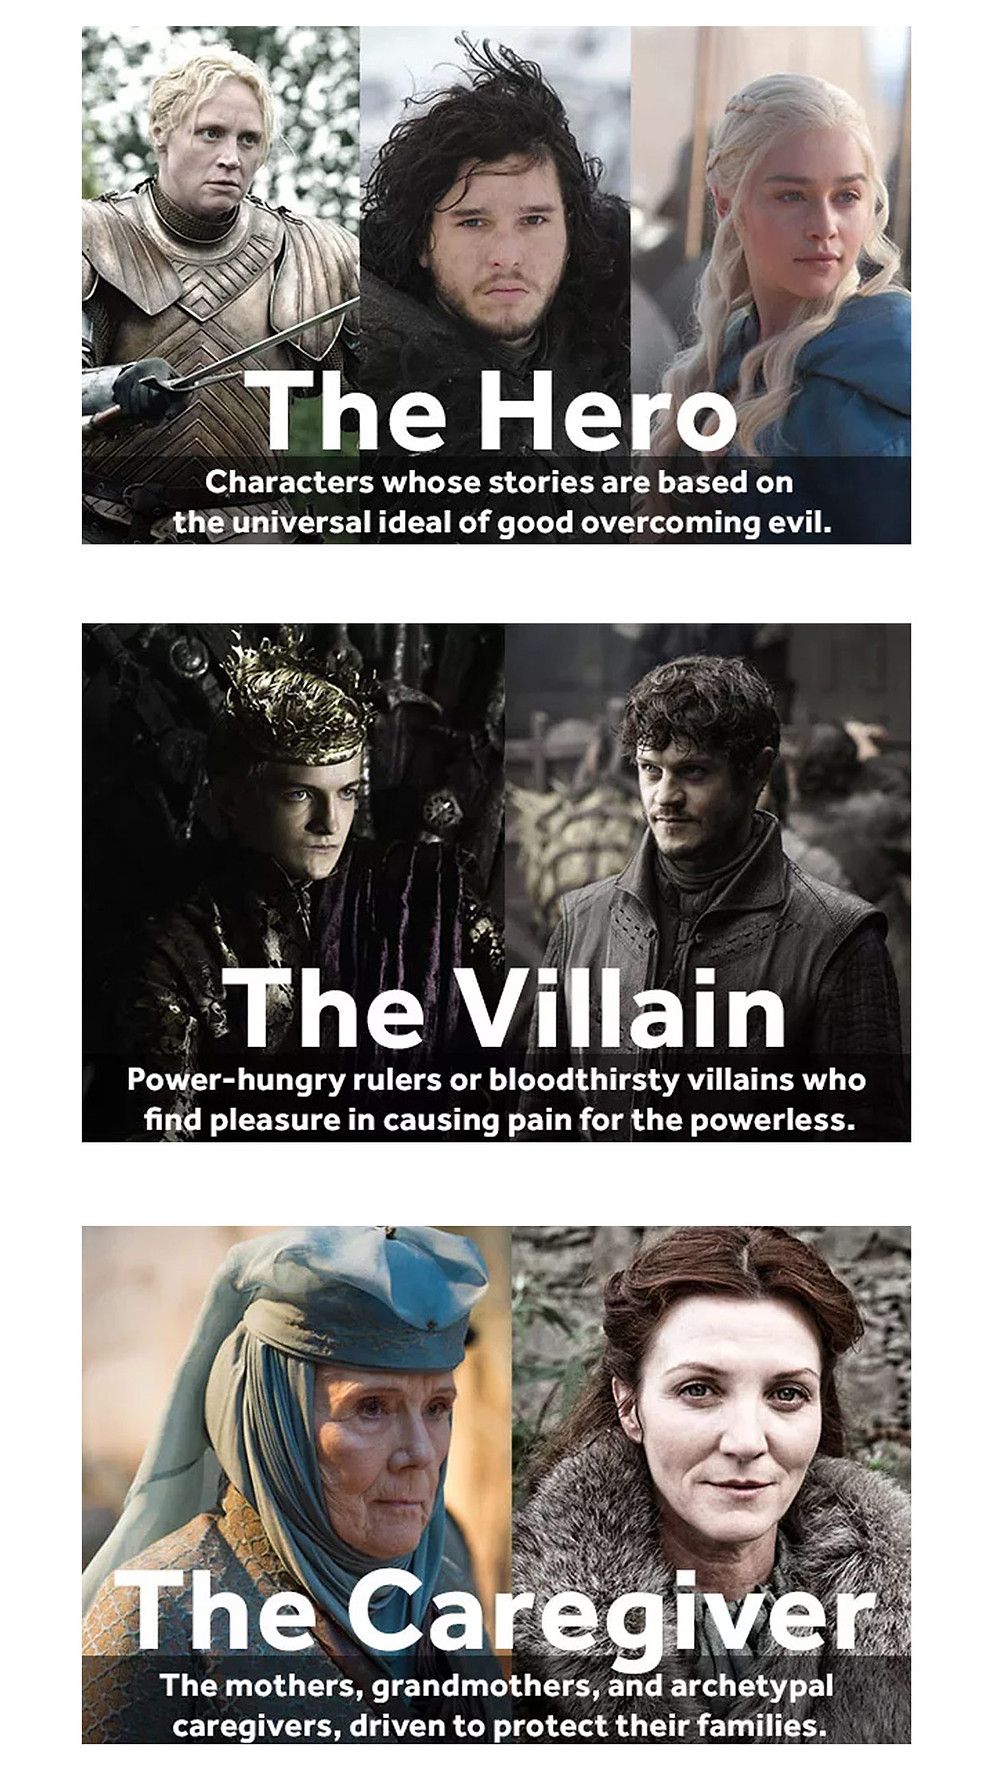 Archtypes and persona's for your next marketing campaign. Game of thrones inspired marketing